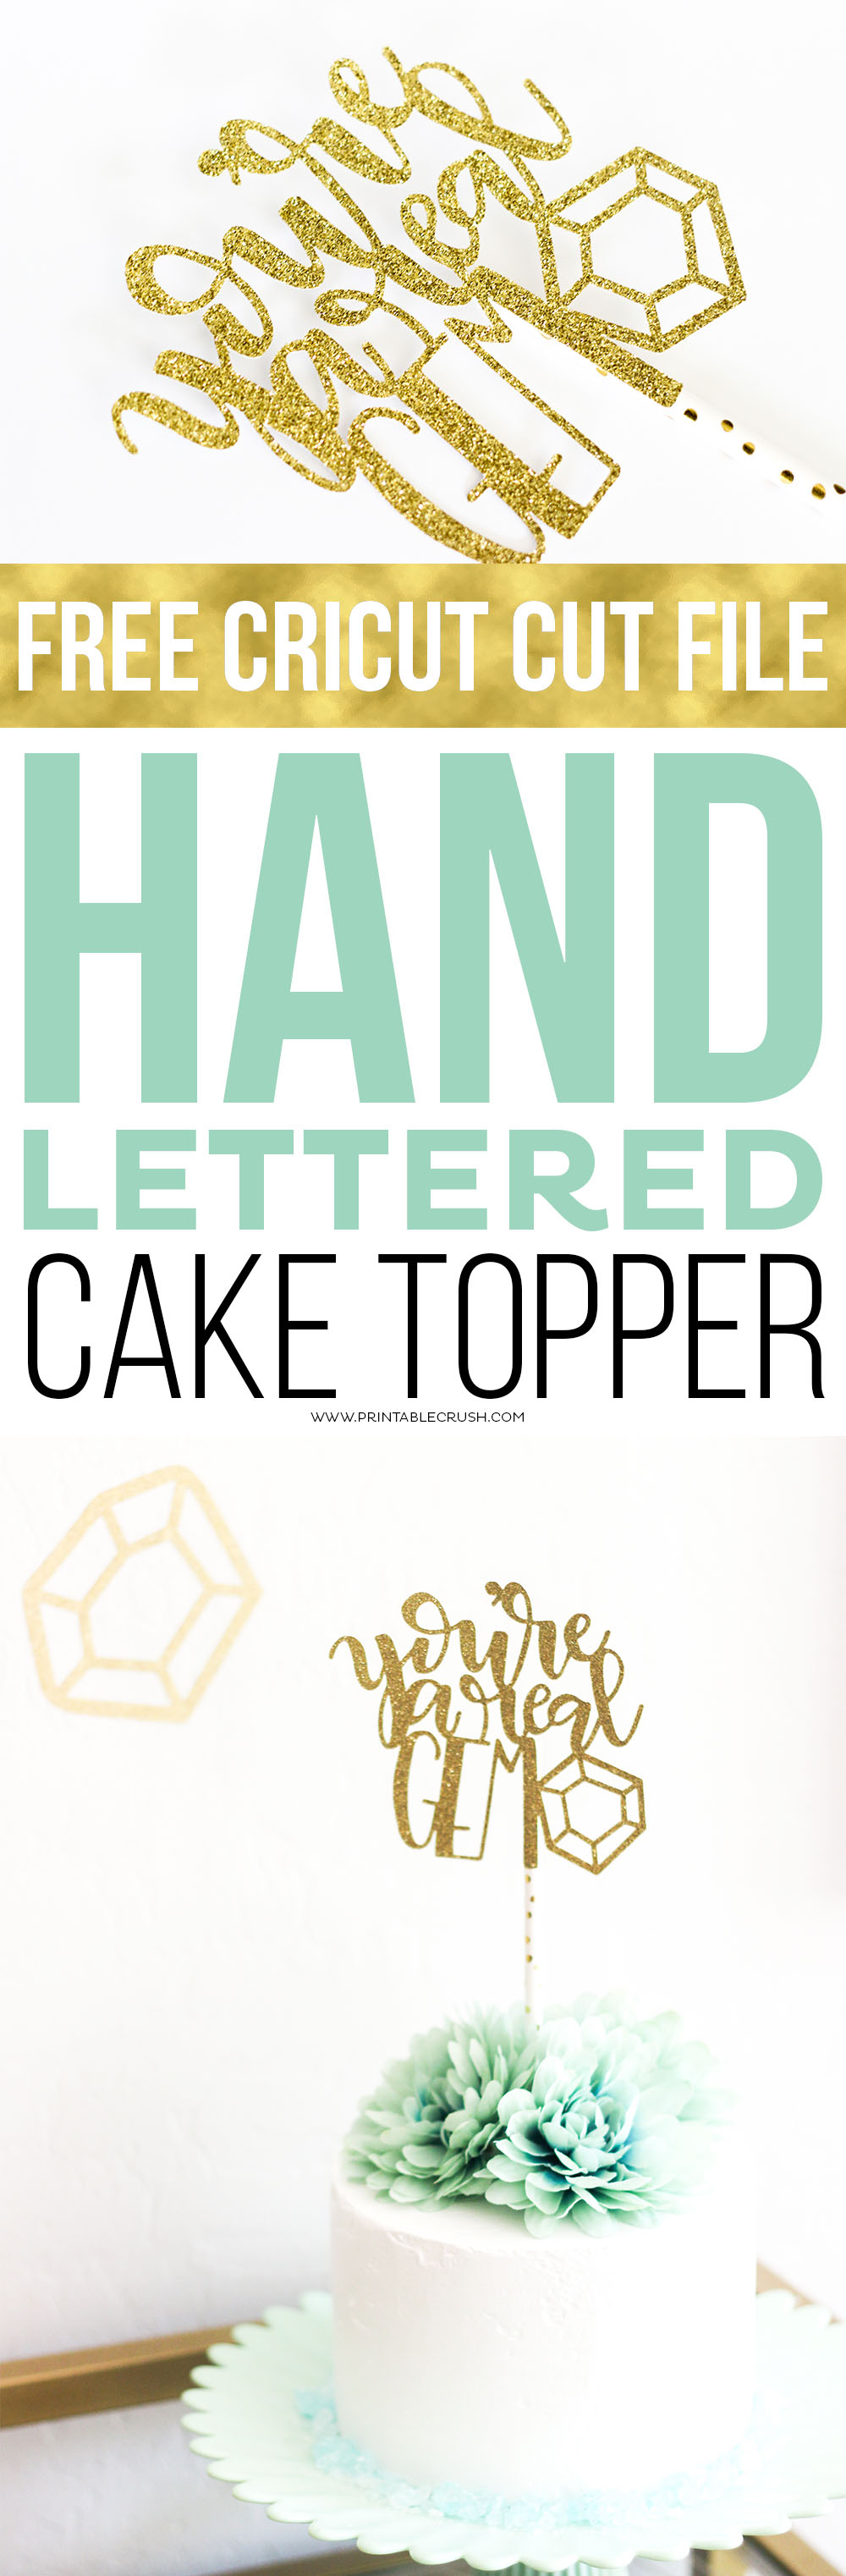 http://printablecrush.com/wp-content/uploads/2017/07/Hand-Lettered-Cake-Topper-free-Cricut-Cut-File.jpg